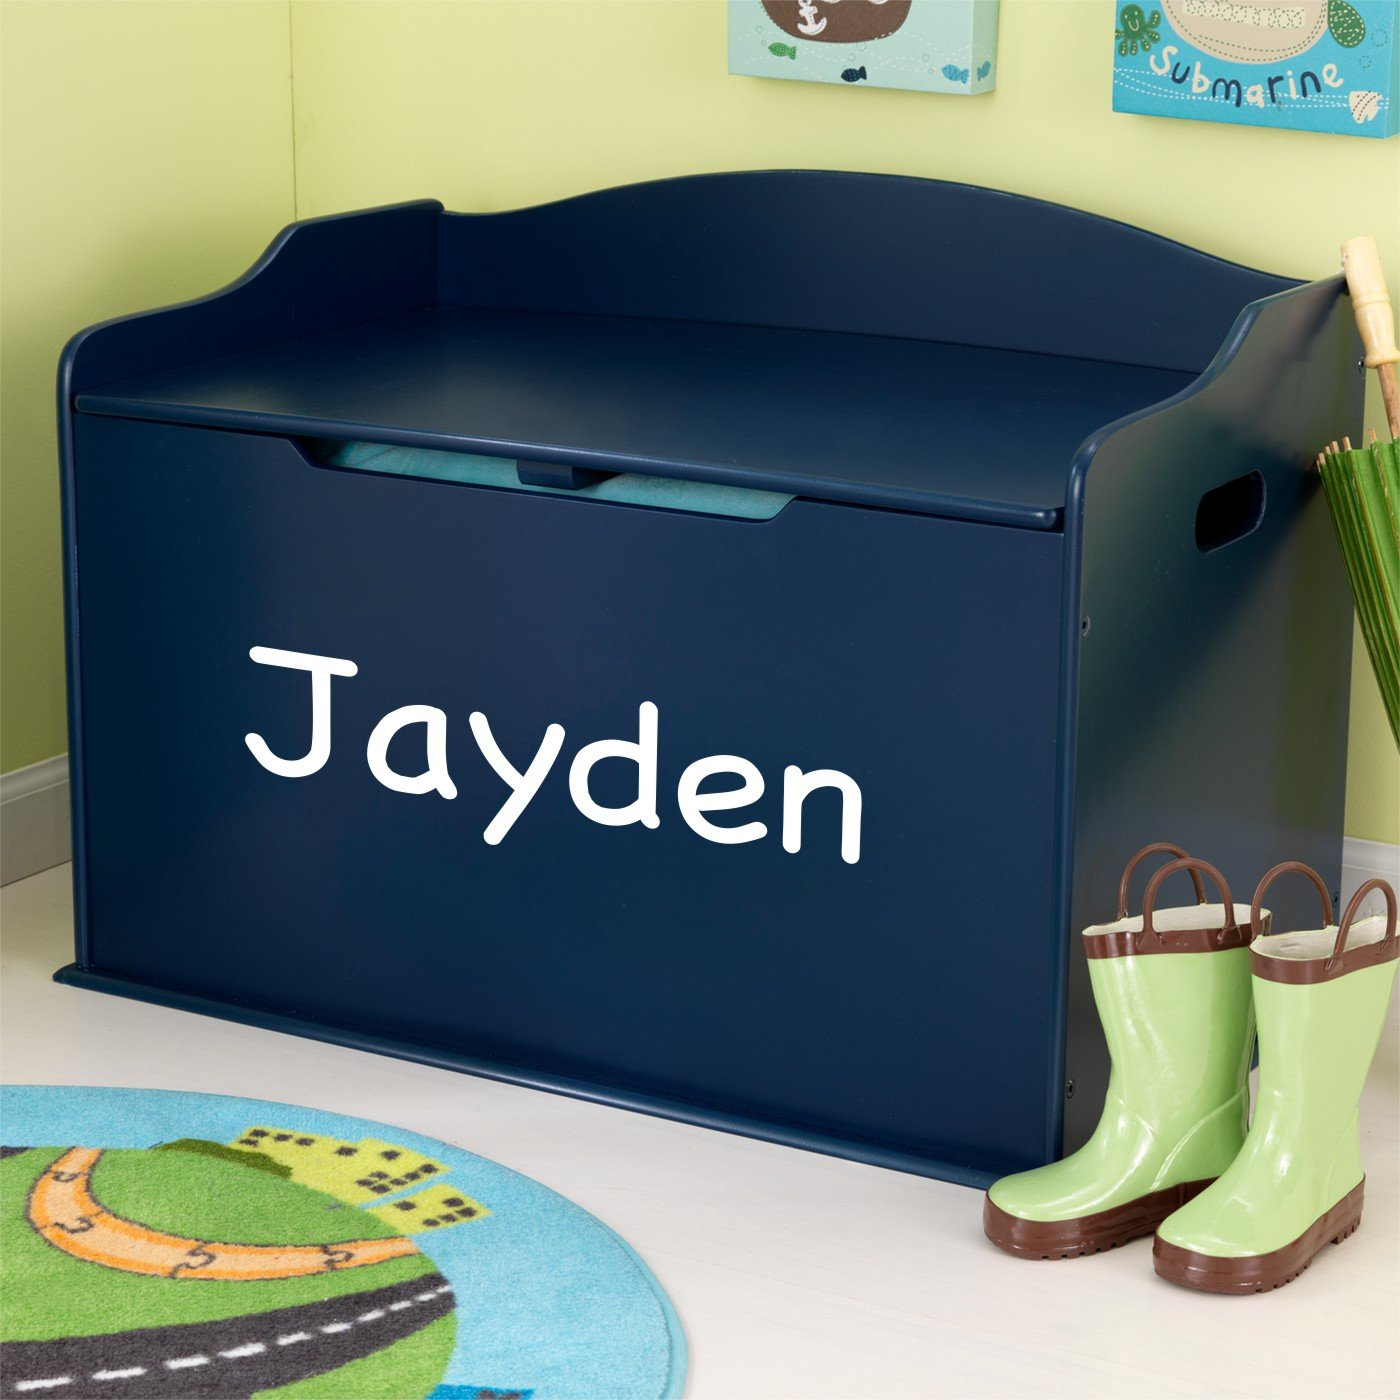 Personalized Modern Touch Toy Box - Blueberry with Custom Font Choices … by DIBSIES Personalization Station